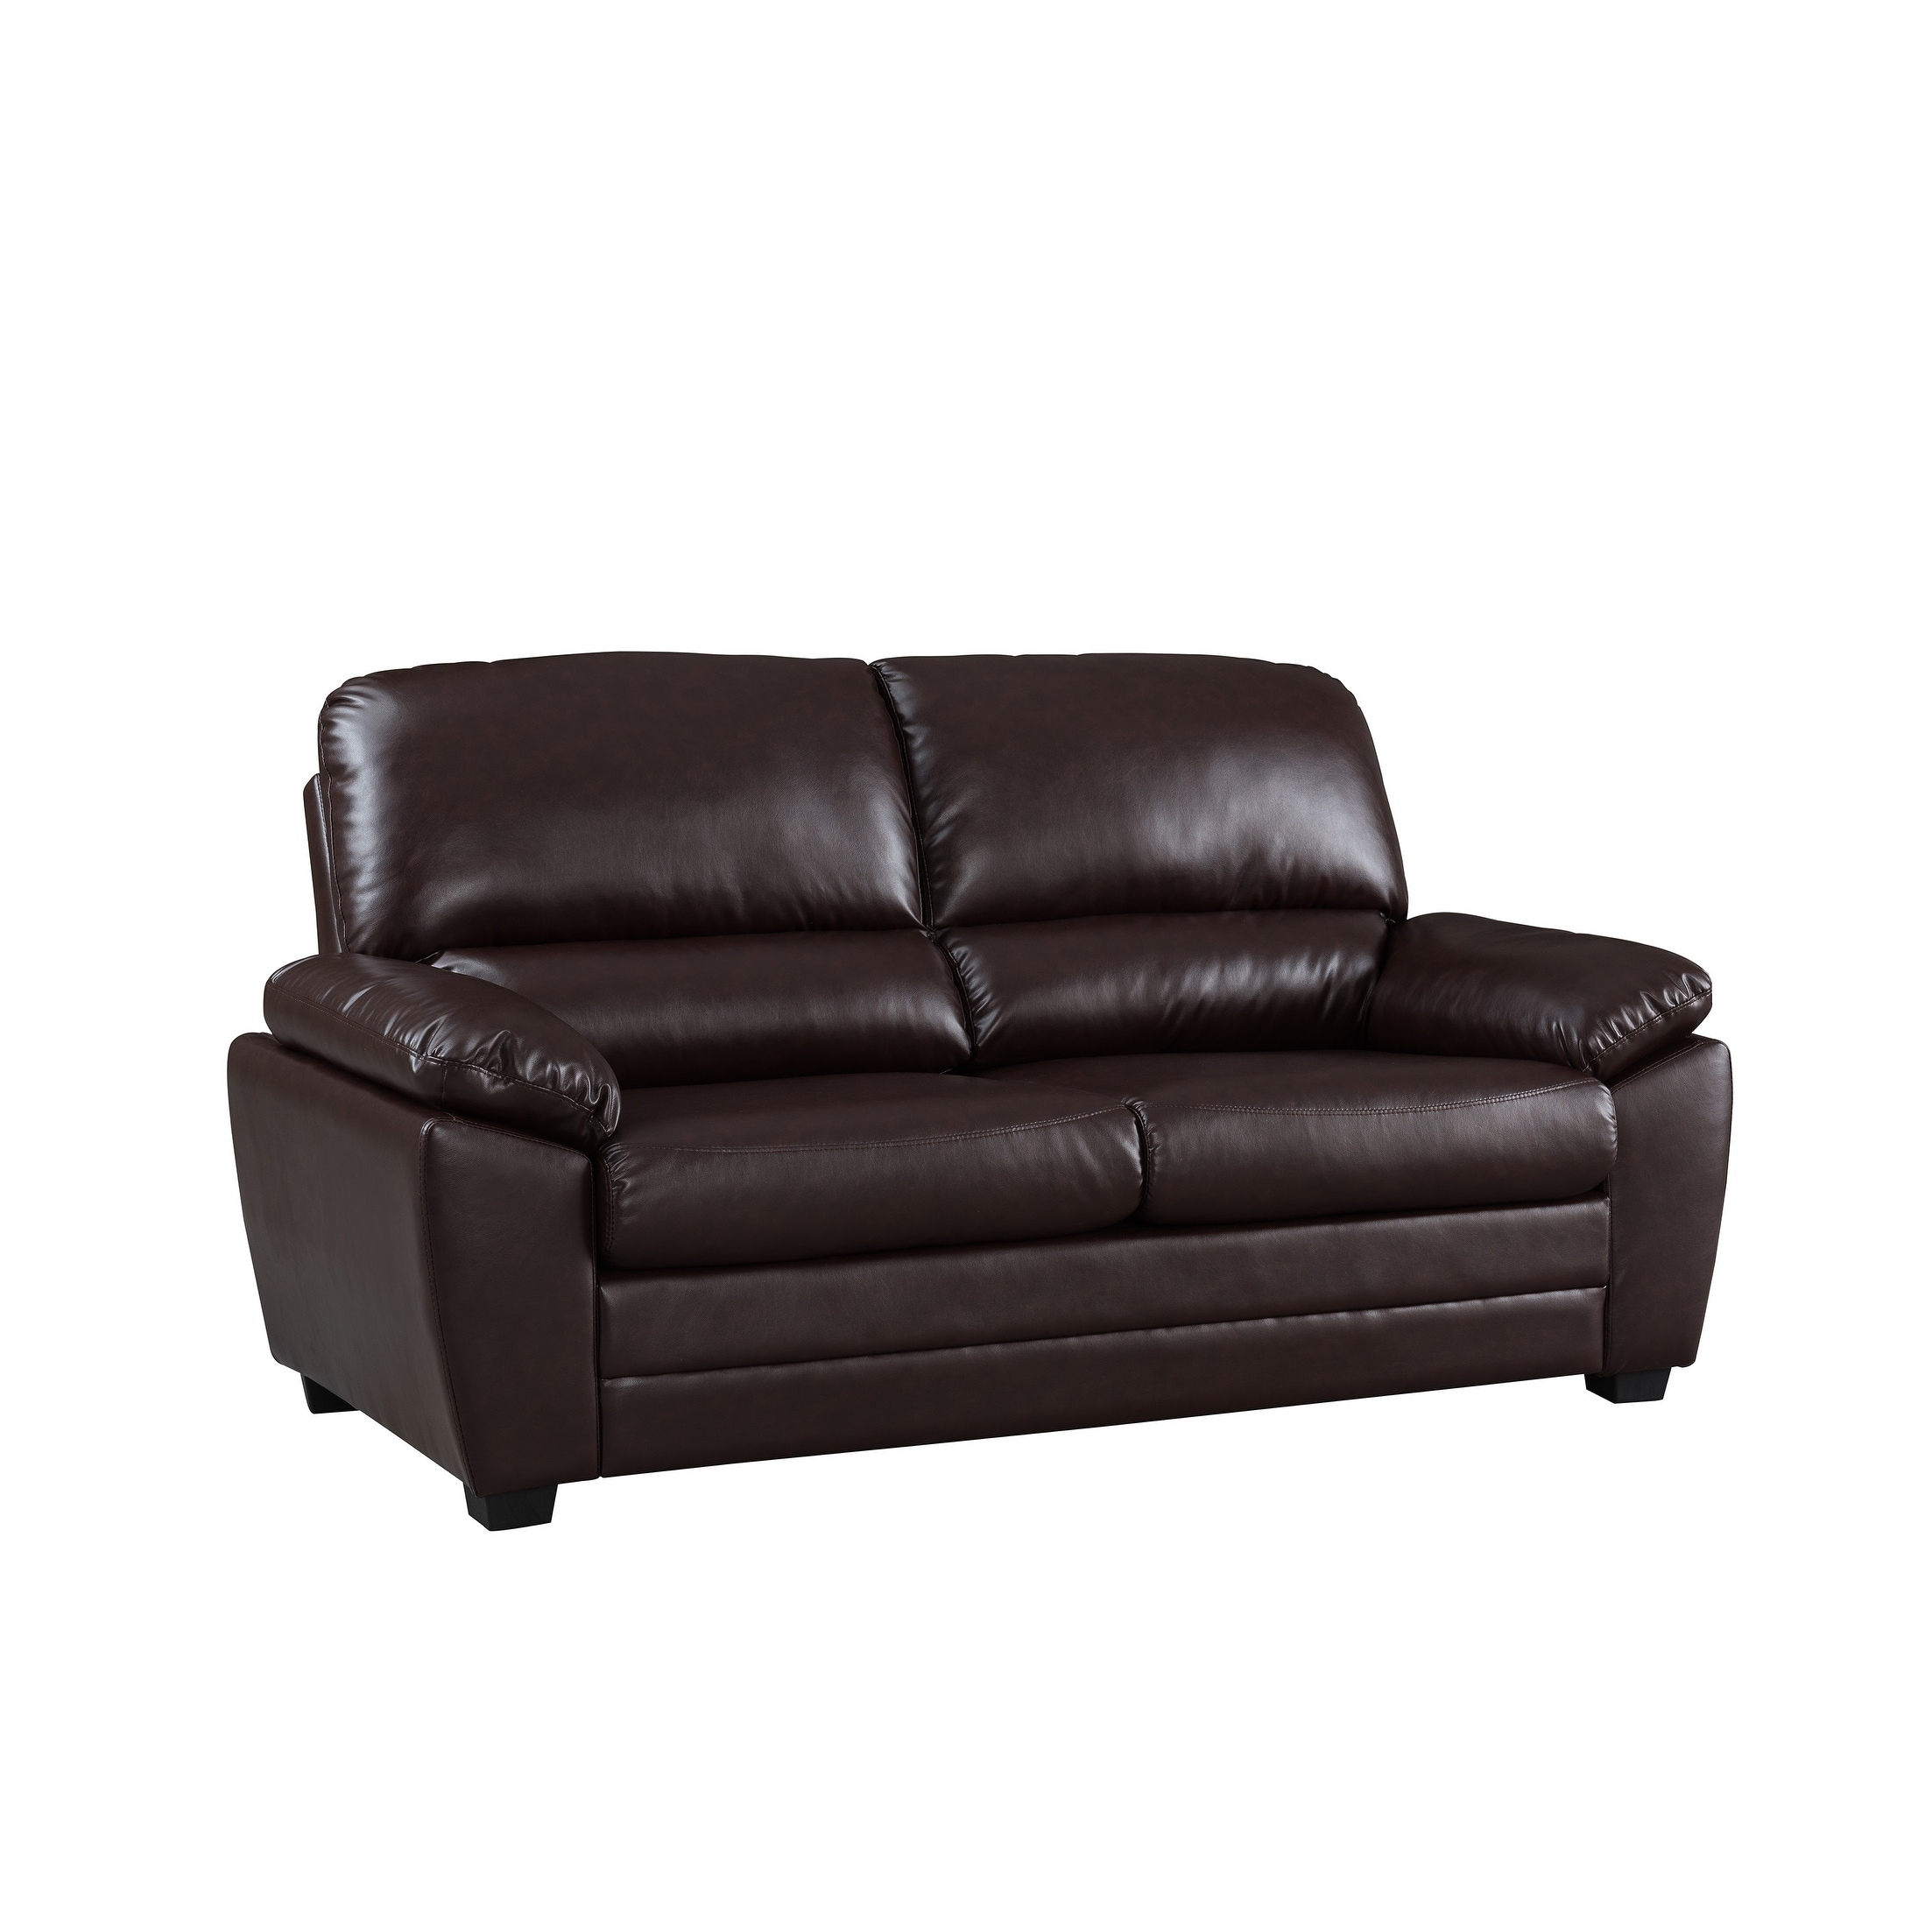 Shop Cary 71 Dark Brown Faux Leather Sofa On Sale Free Shipping